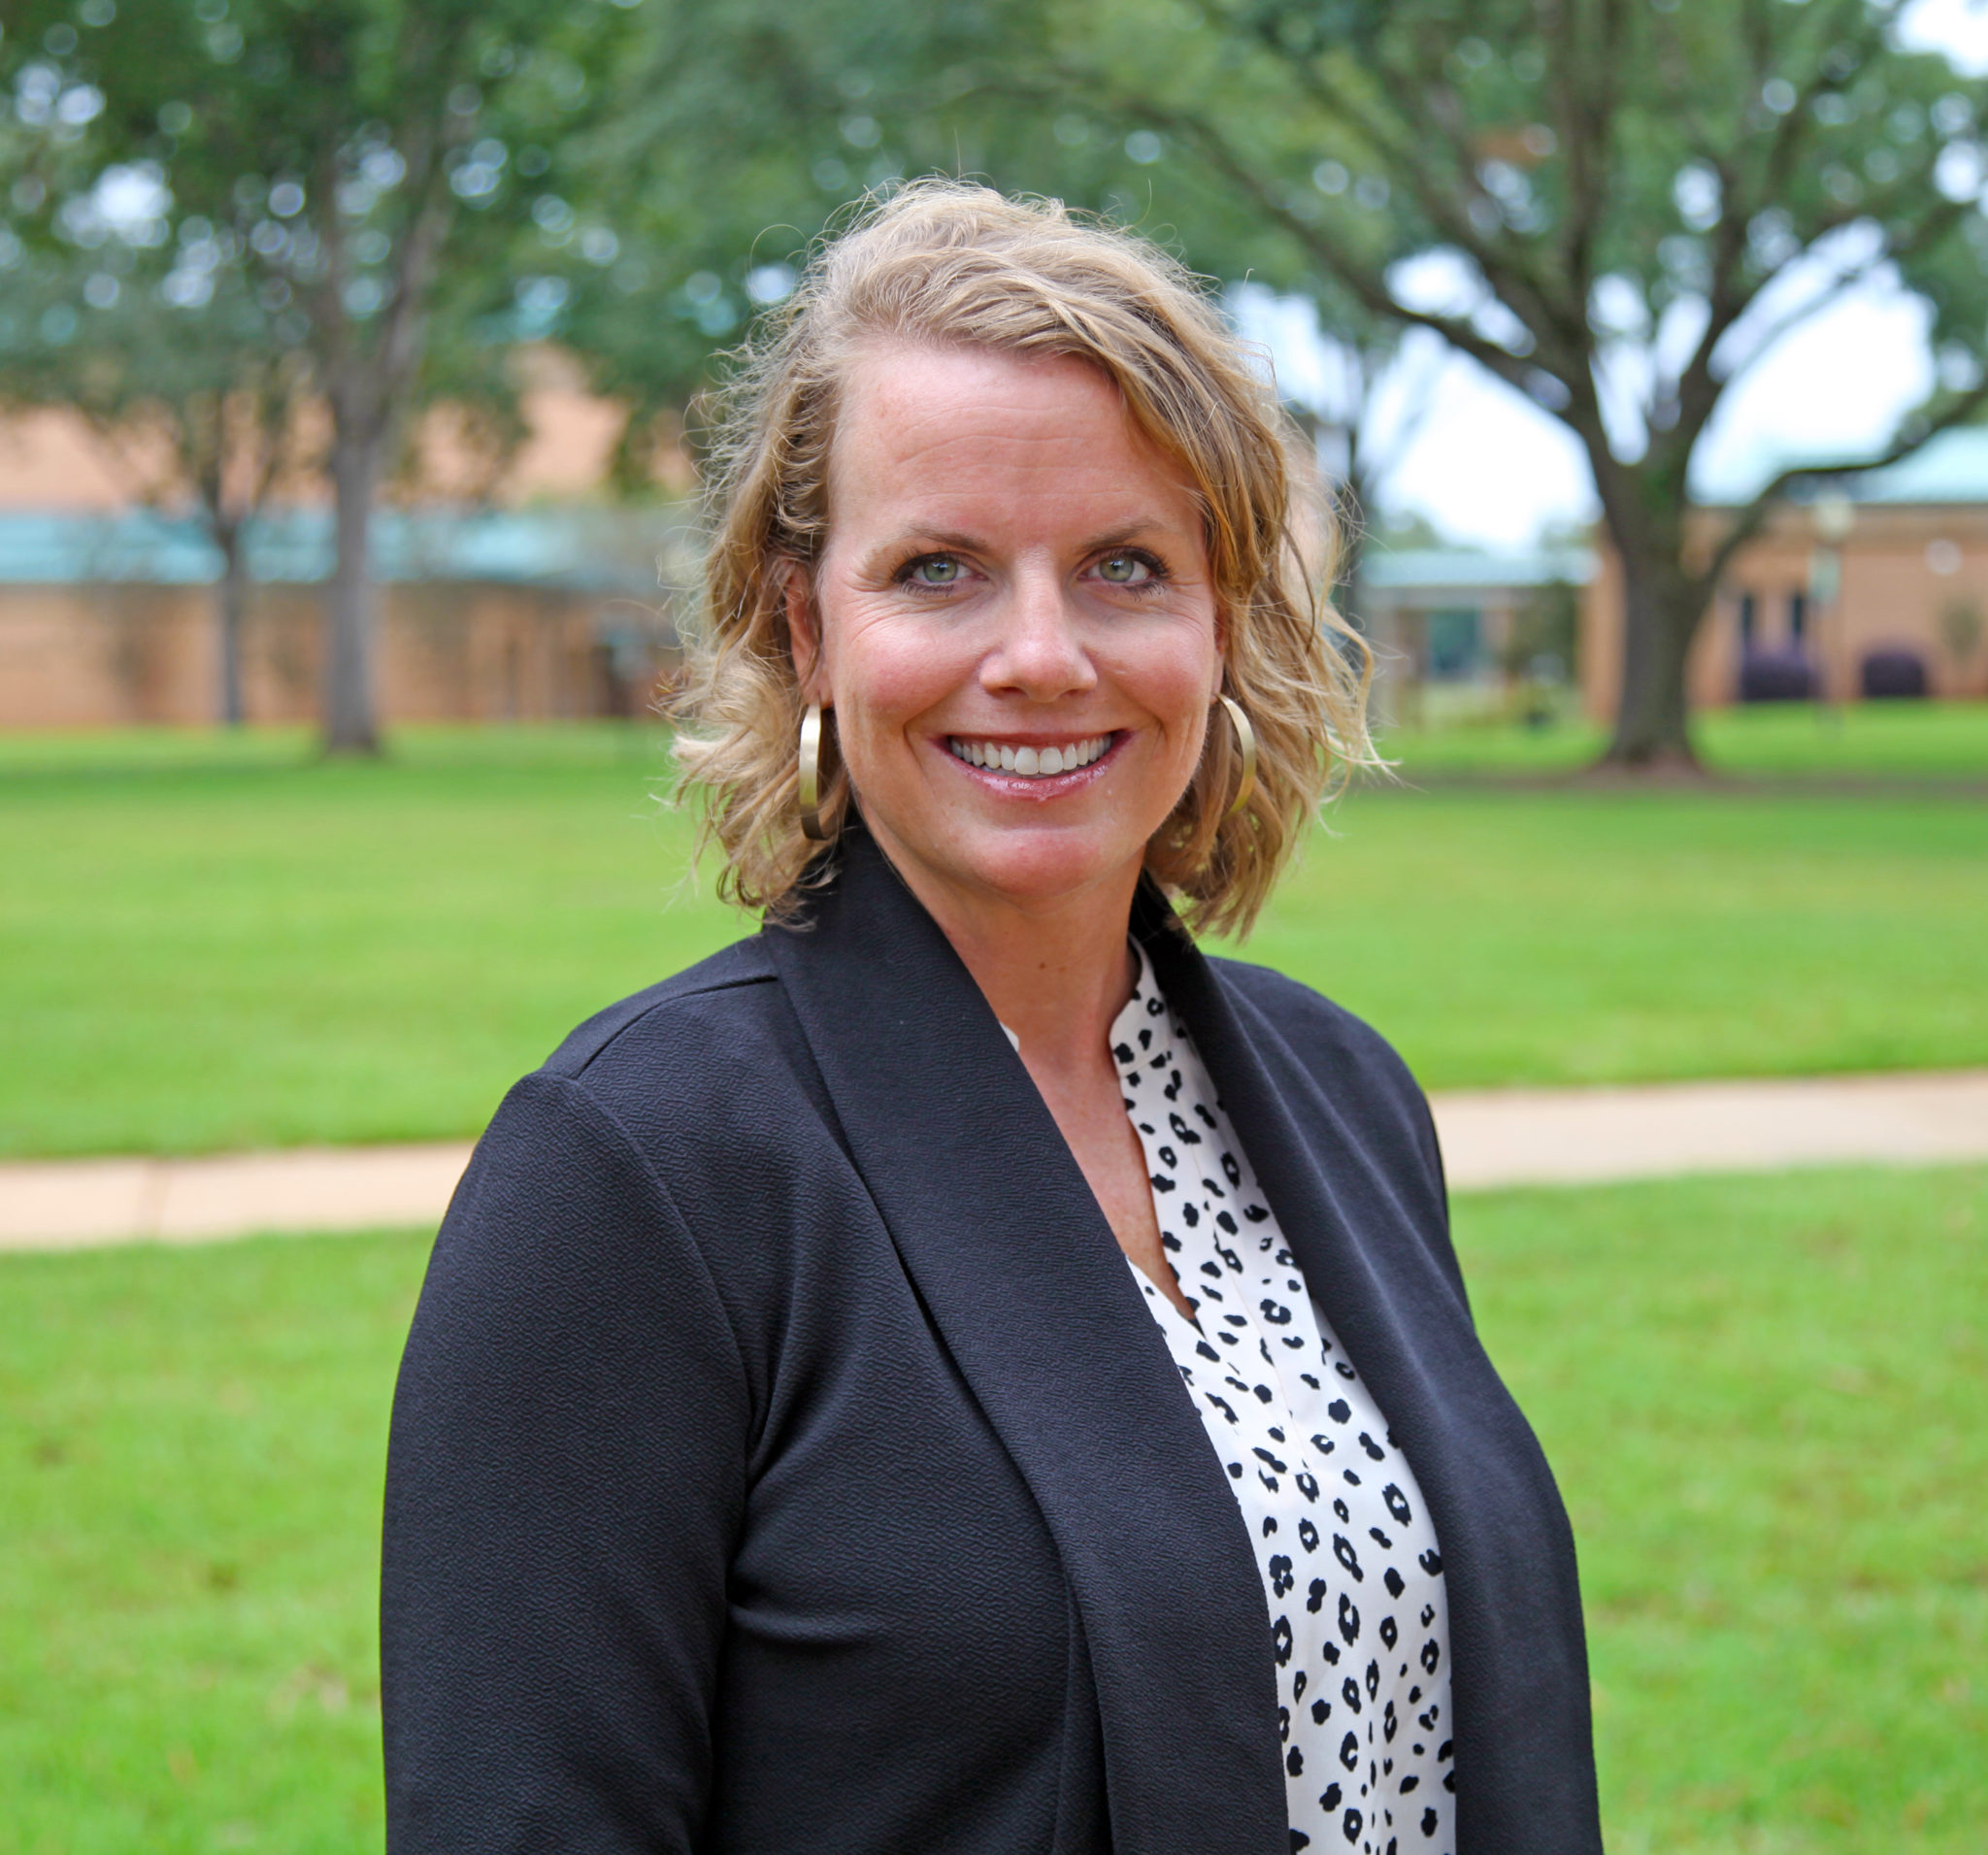 Shiver returning to ESCC as Director of Workforce and Adult Education